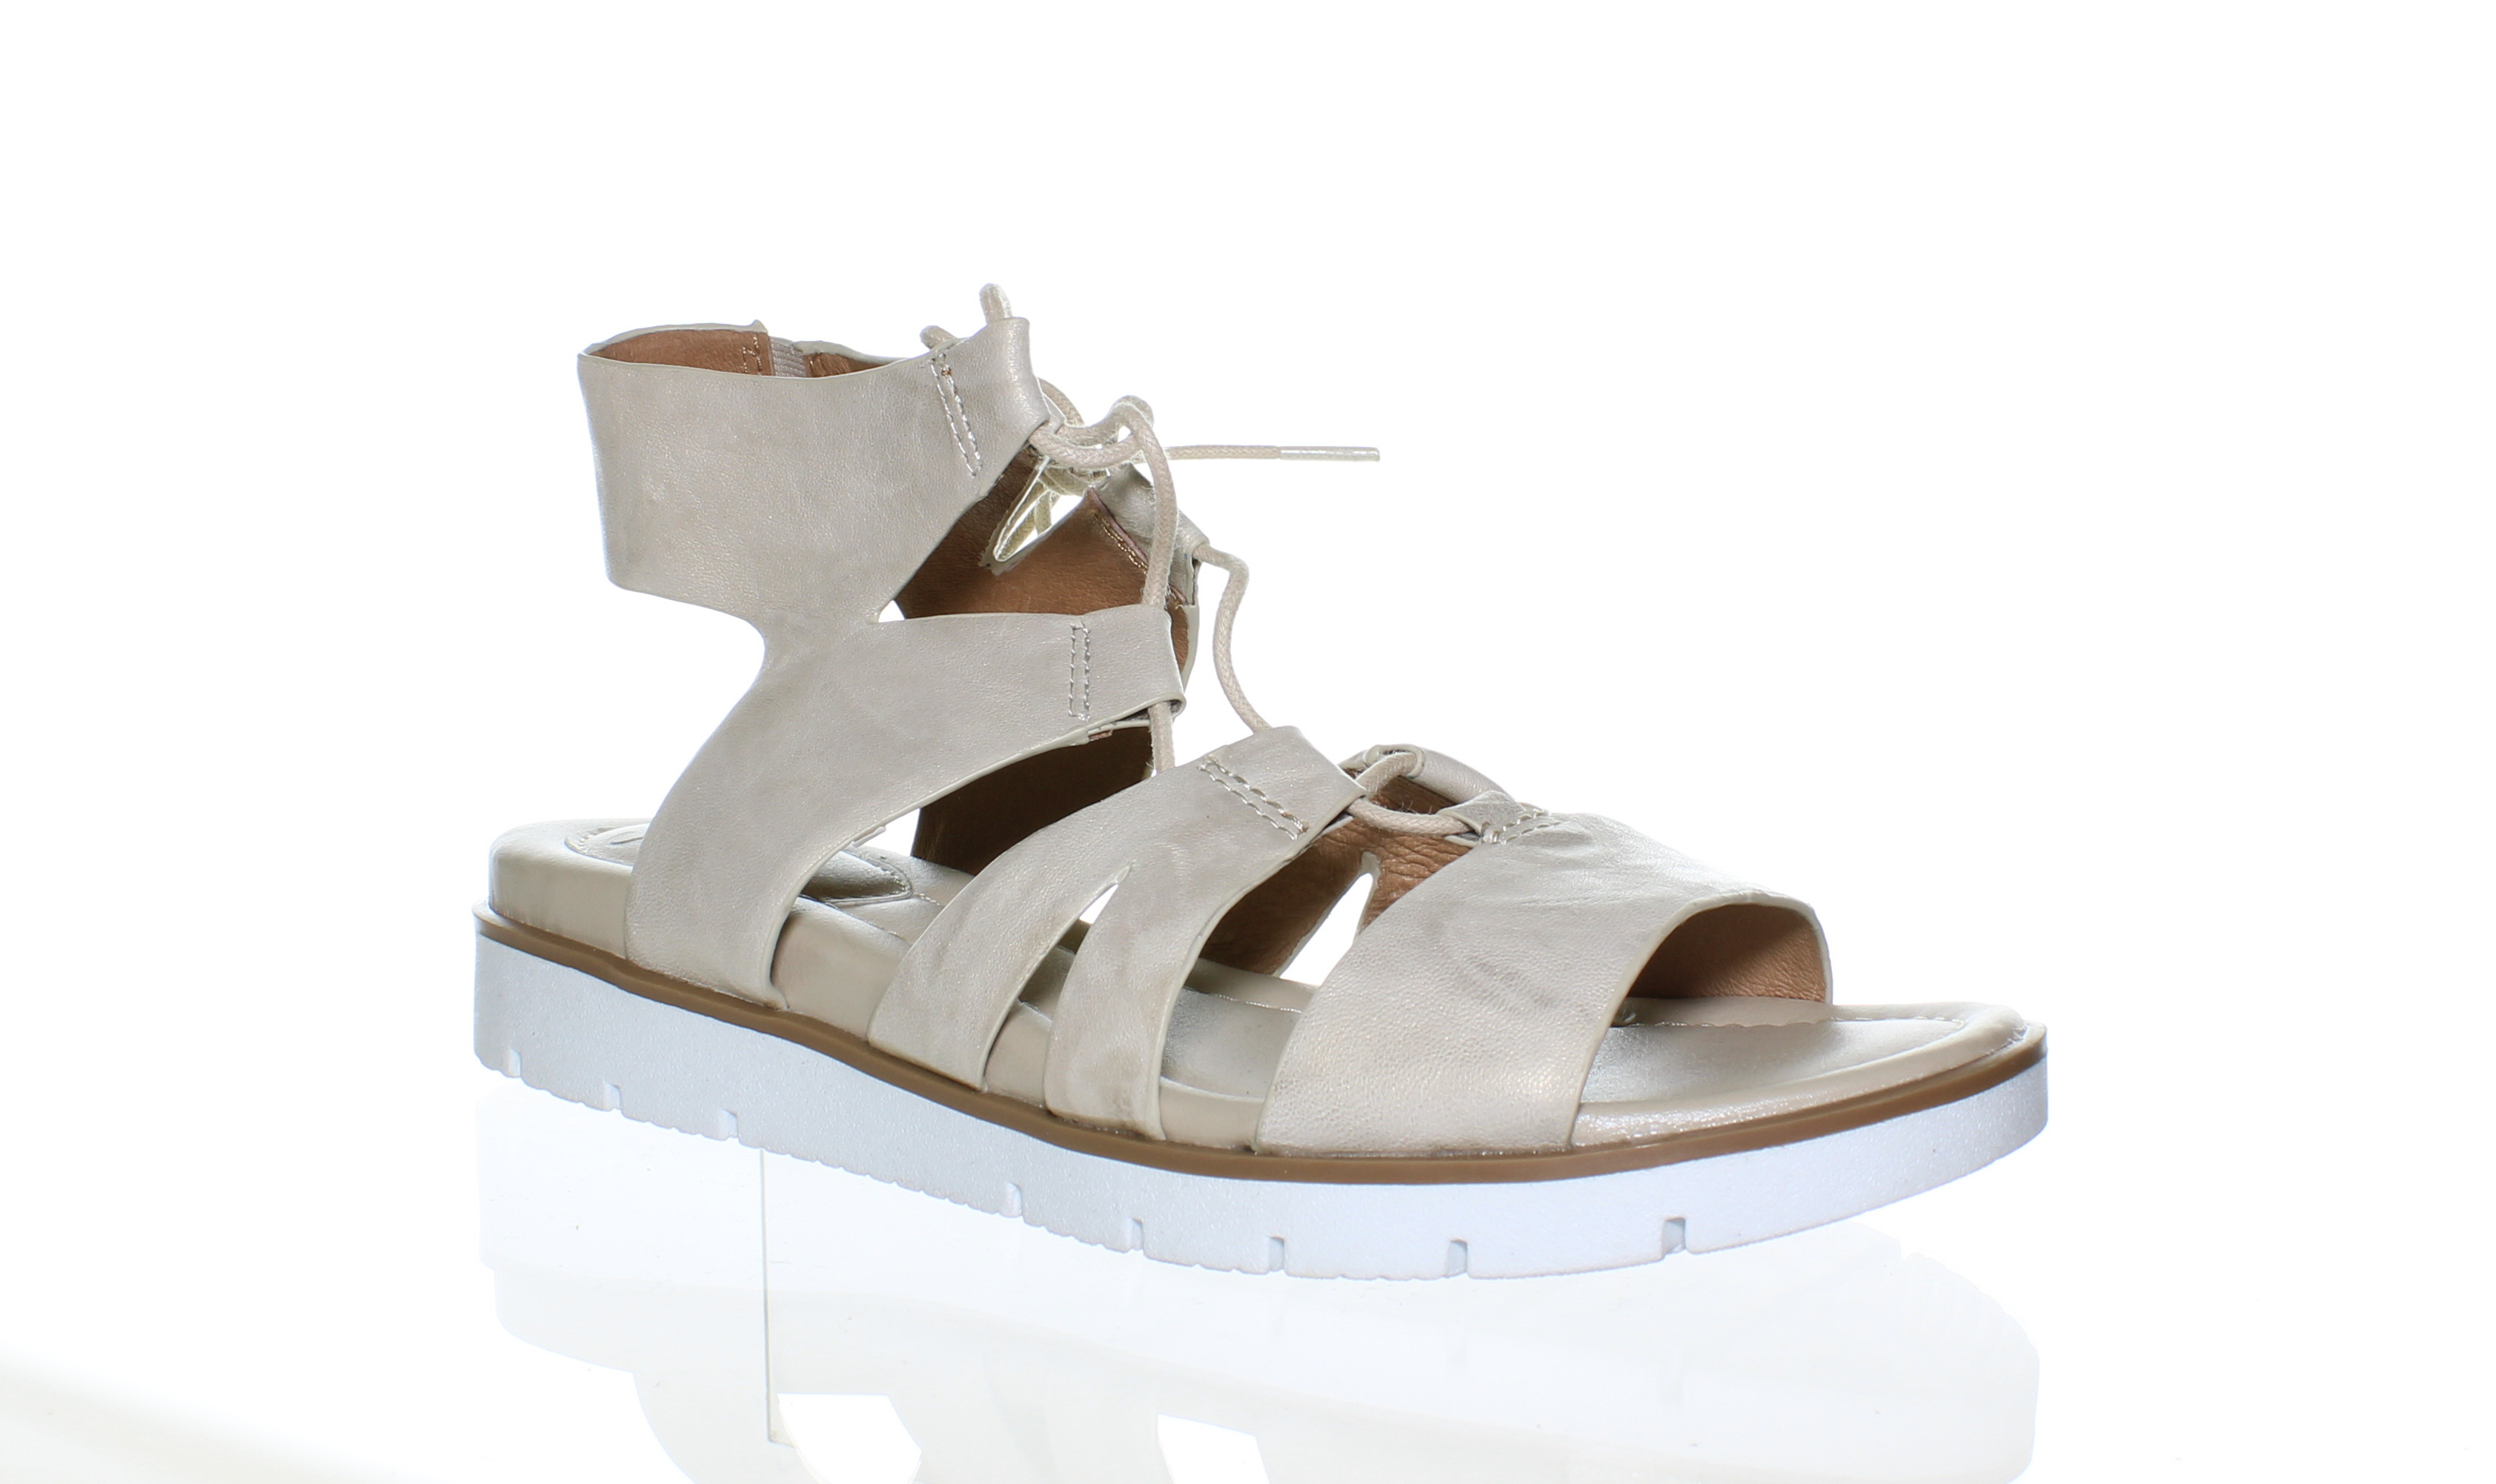 2a203fbd54f Sofft Womens Madera Light Grey Sandals Size 8 (104315)